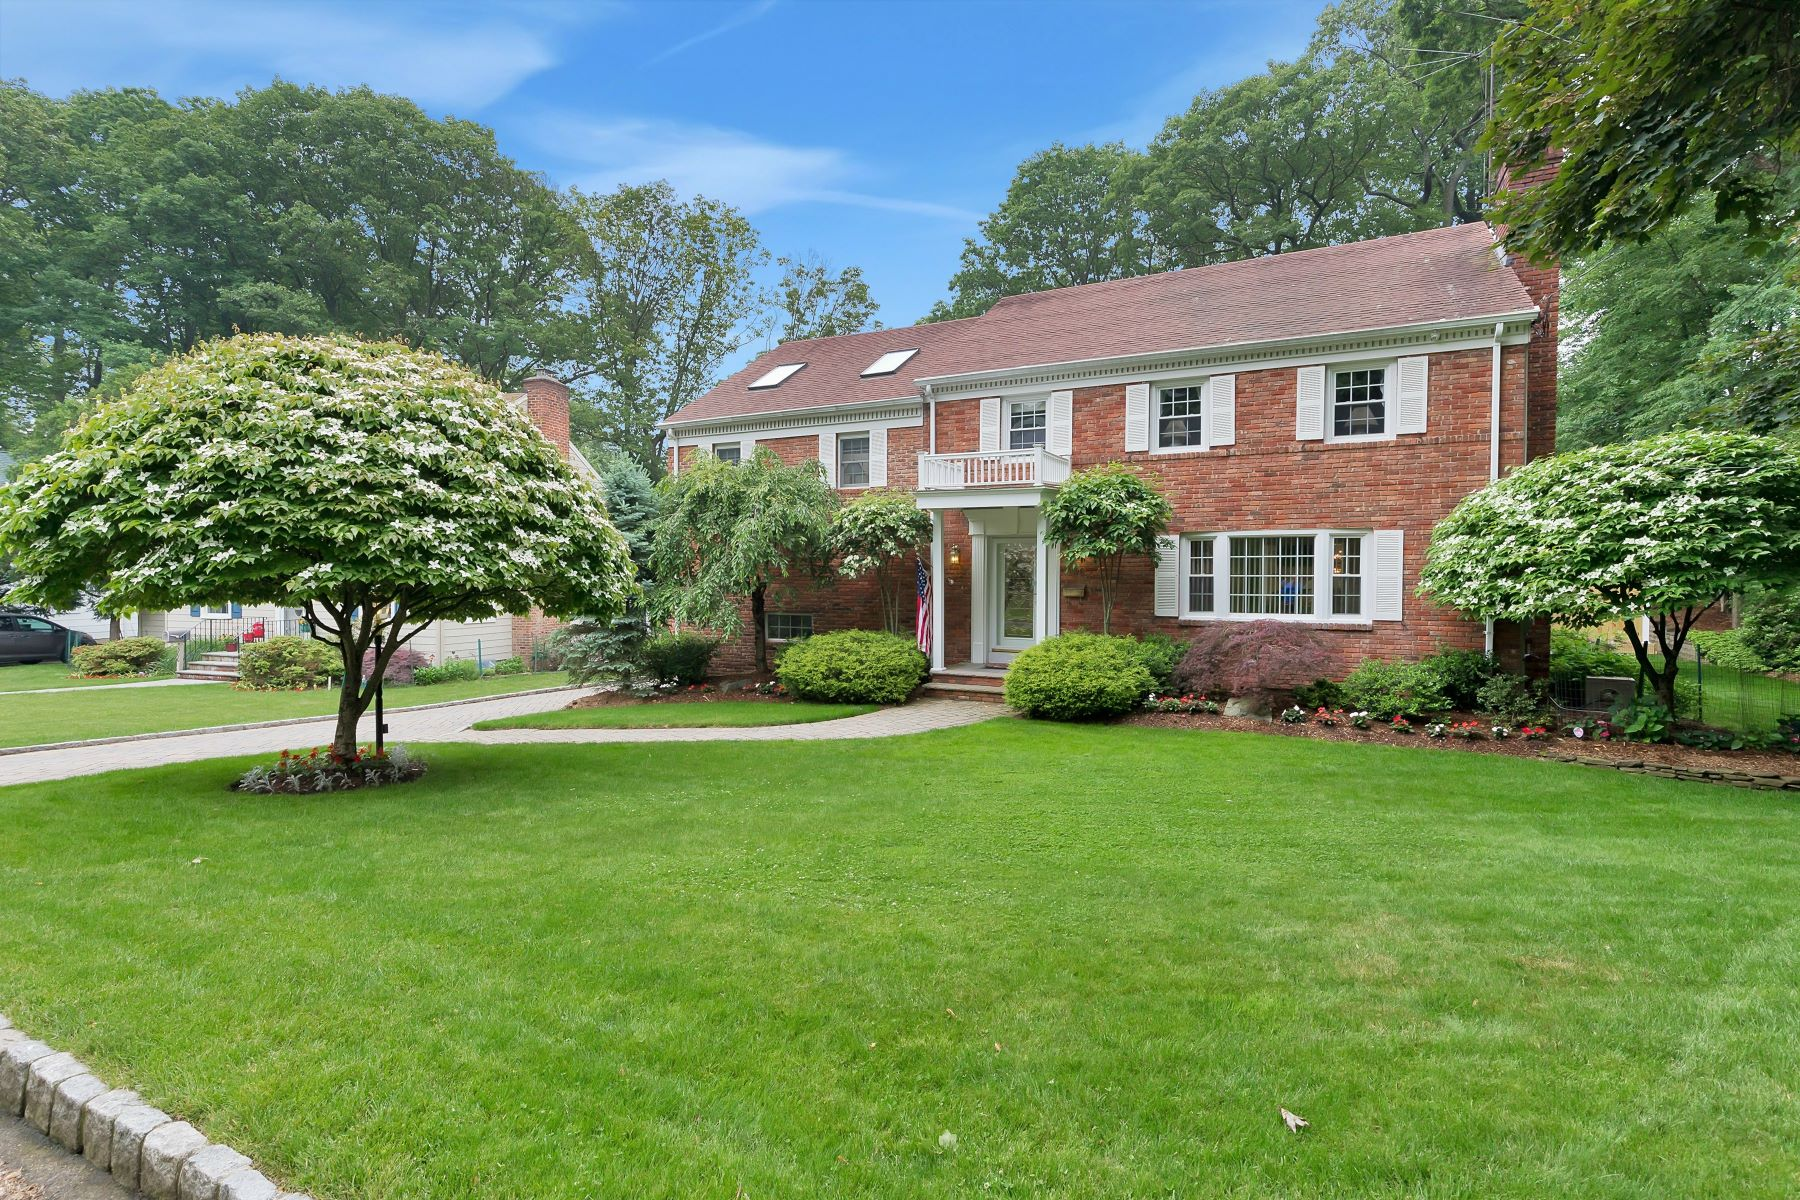 Single Family Home for Sale at Spectacular Residence 296 Partridge Run Mountainside, New Jersey 07092 United States